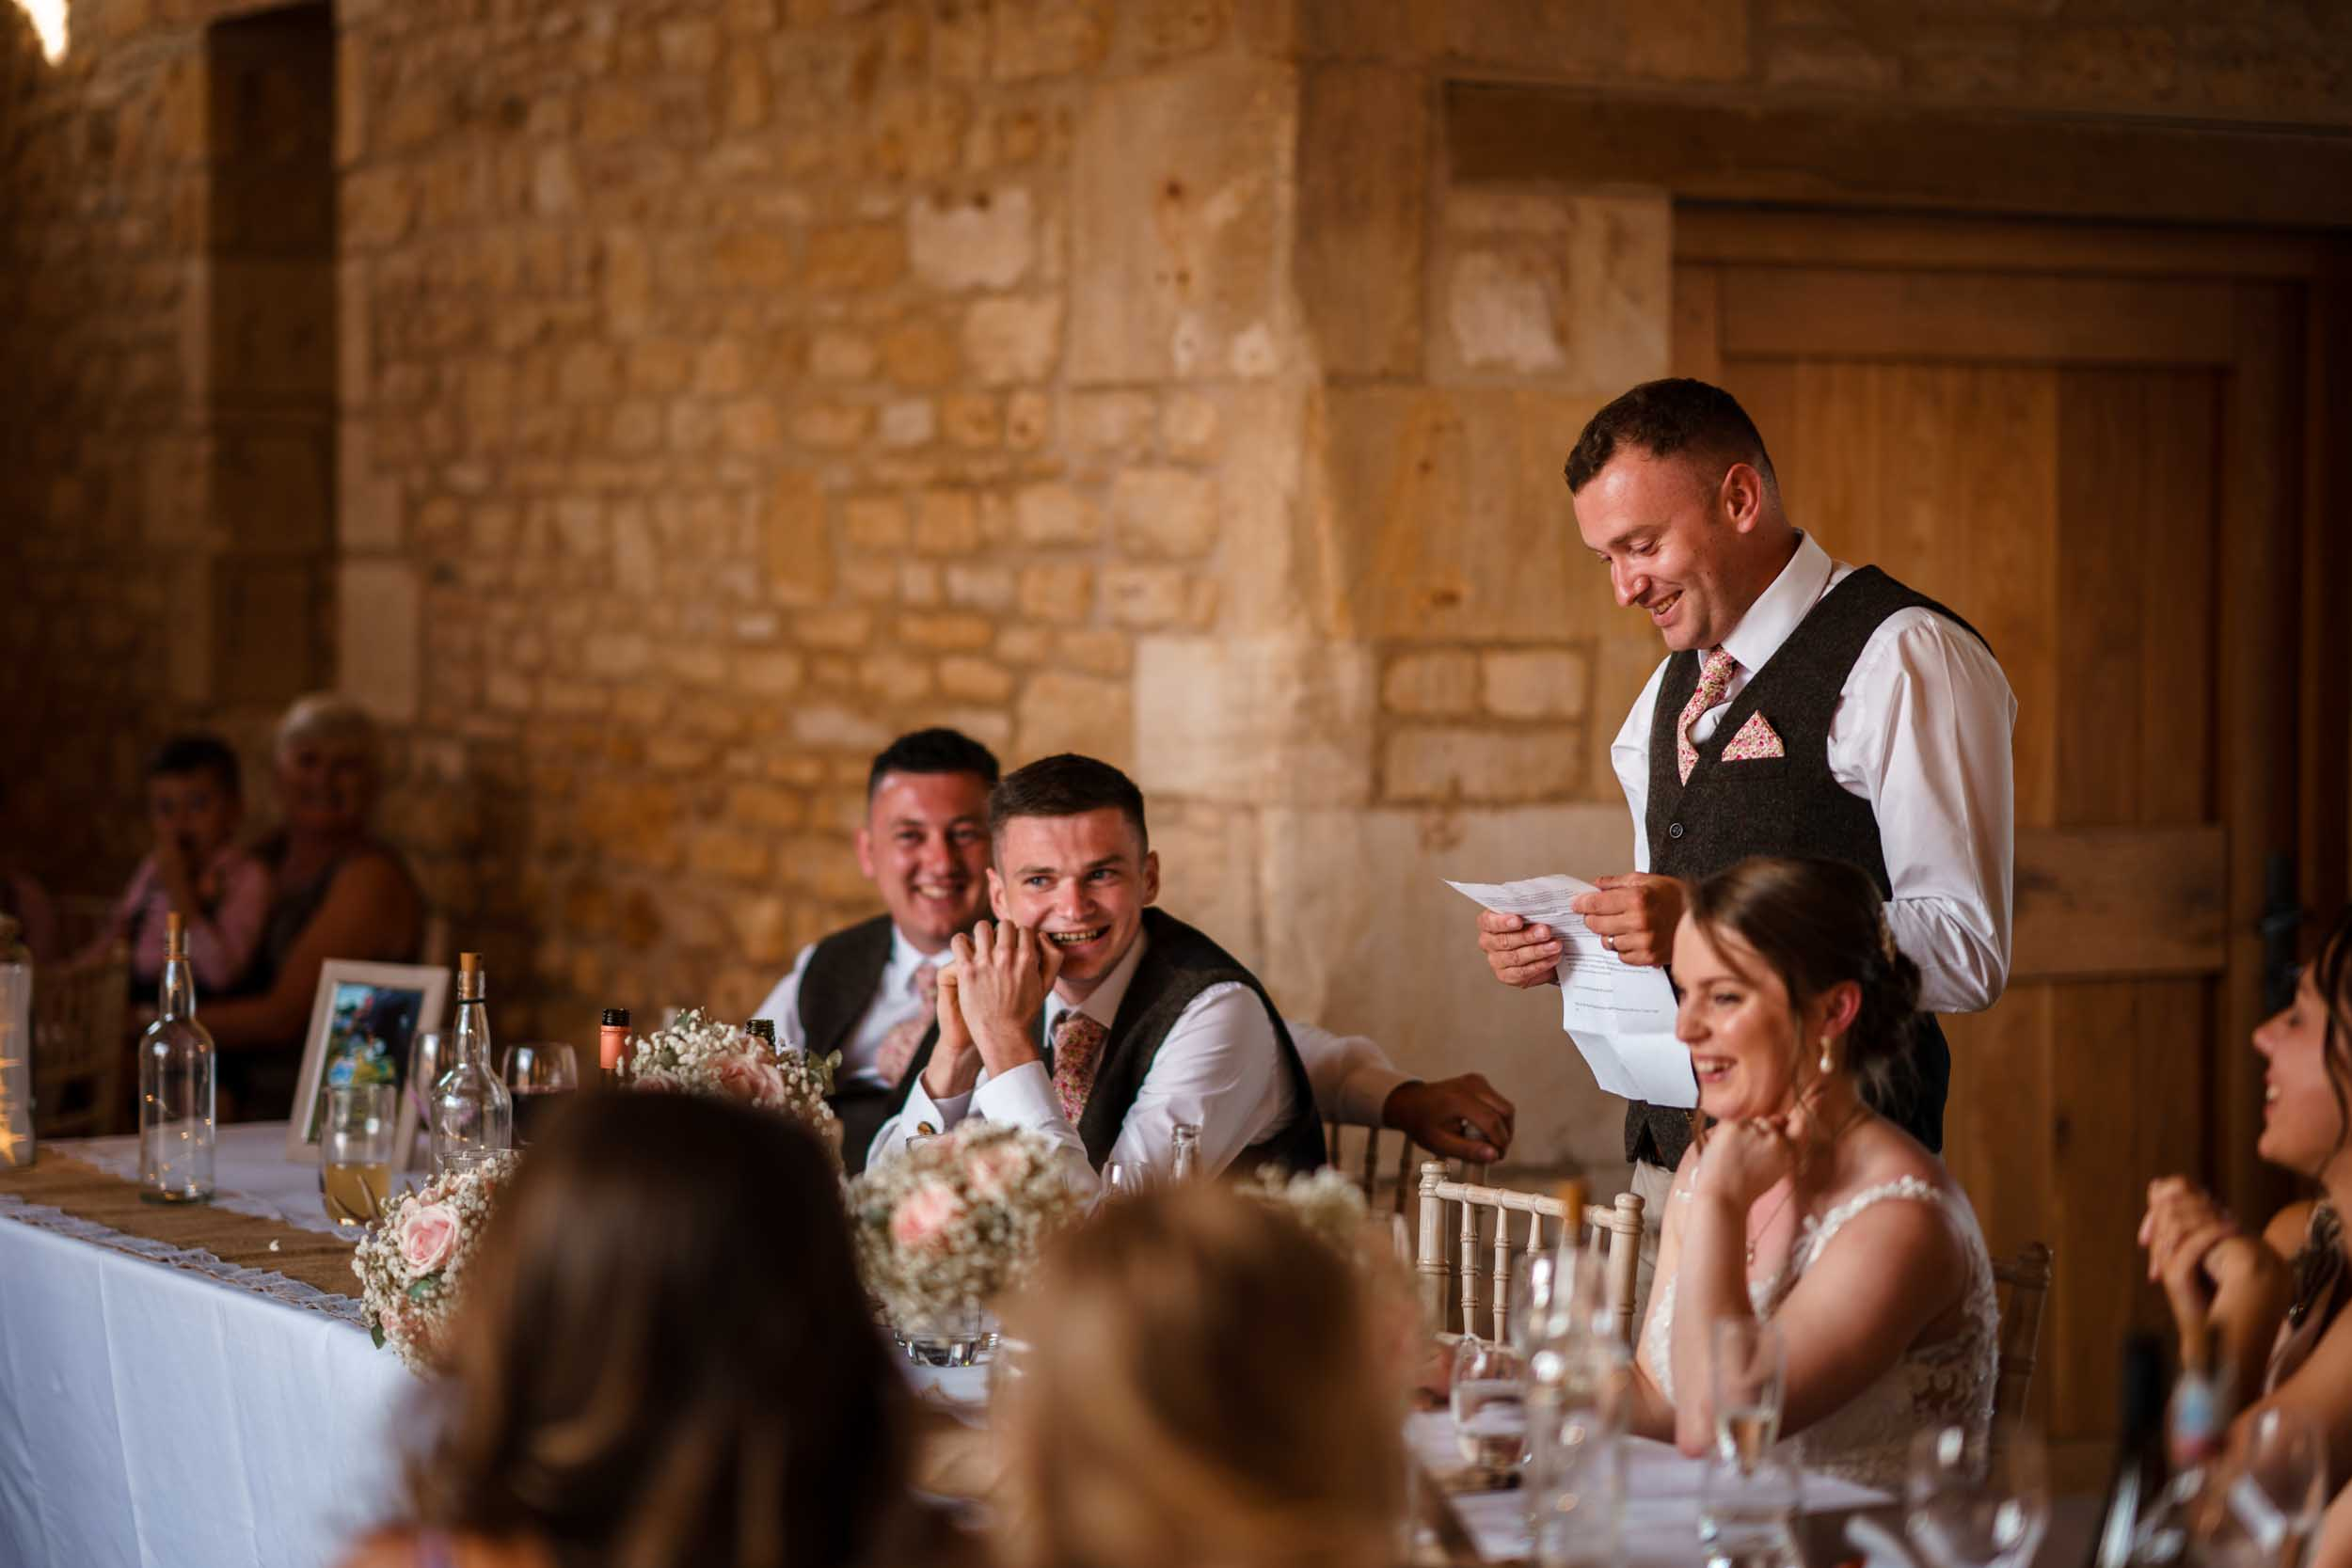 The Barn at Upcote Wedding Photographer, Wedding Photographer Upcote Barn, The Barn at Upcote, Cotswolds Wedding Photographer, Upcote Barn, Wedding, Photography, Gloucestershire Wedding Photographer